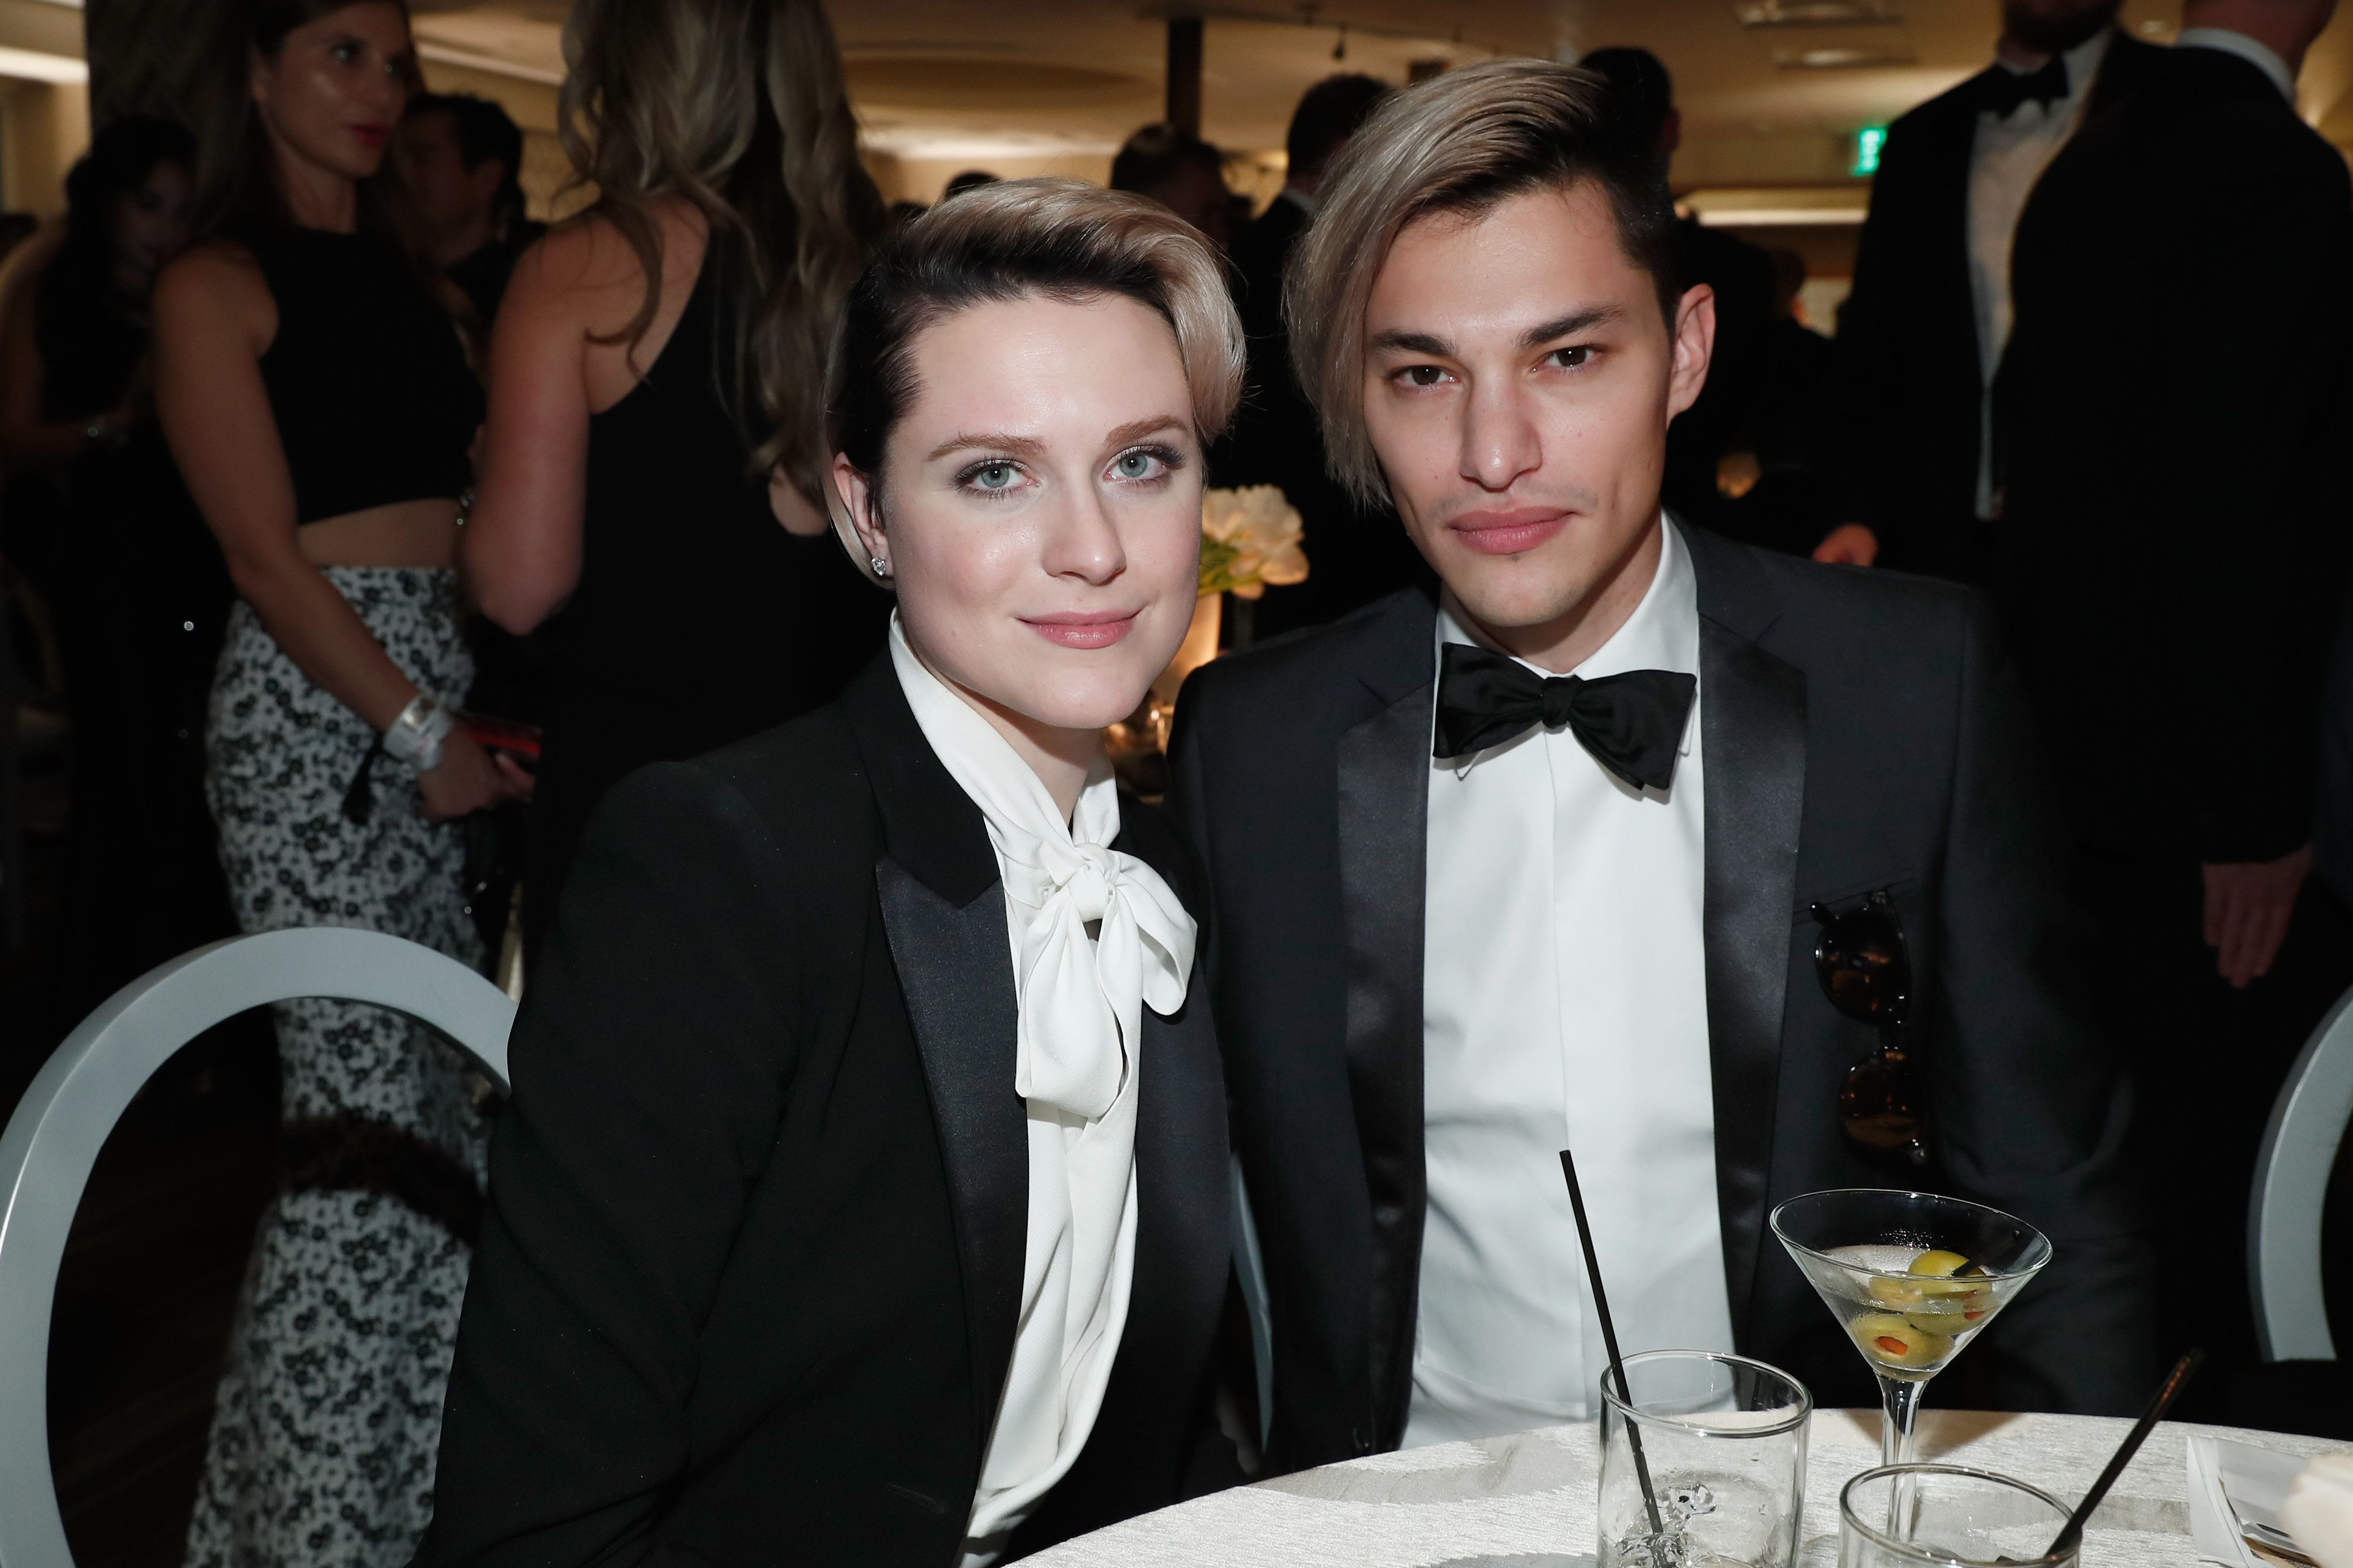 BEVERLY HILLS, CA - JANUARY 08:  Actress Evan Rachel Wood and Zach Villa of Rebel and a Basketcase attend HBO's Official Golden Globe Awards After Party at Circa 55 Restaurant on January 8, 2017 in Beverly Hills, California.  (Photo by FilmMagic/FilmMagic for HBO)